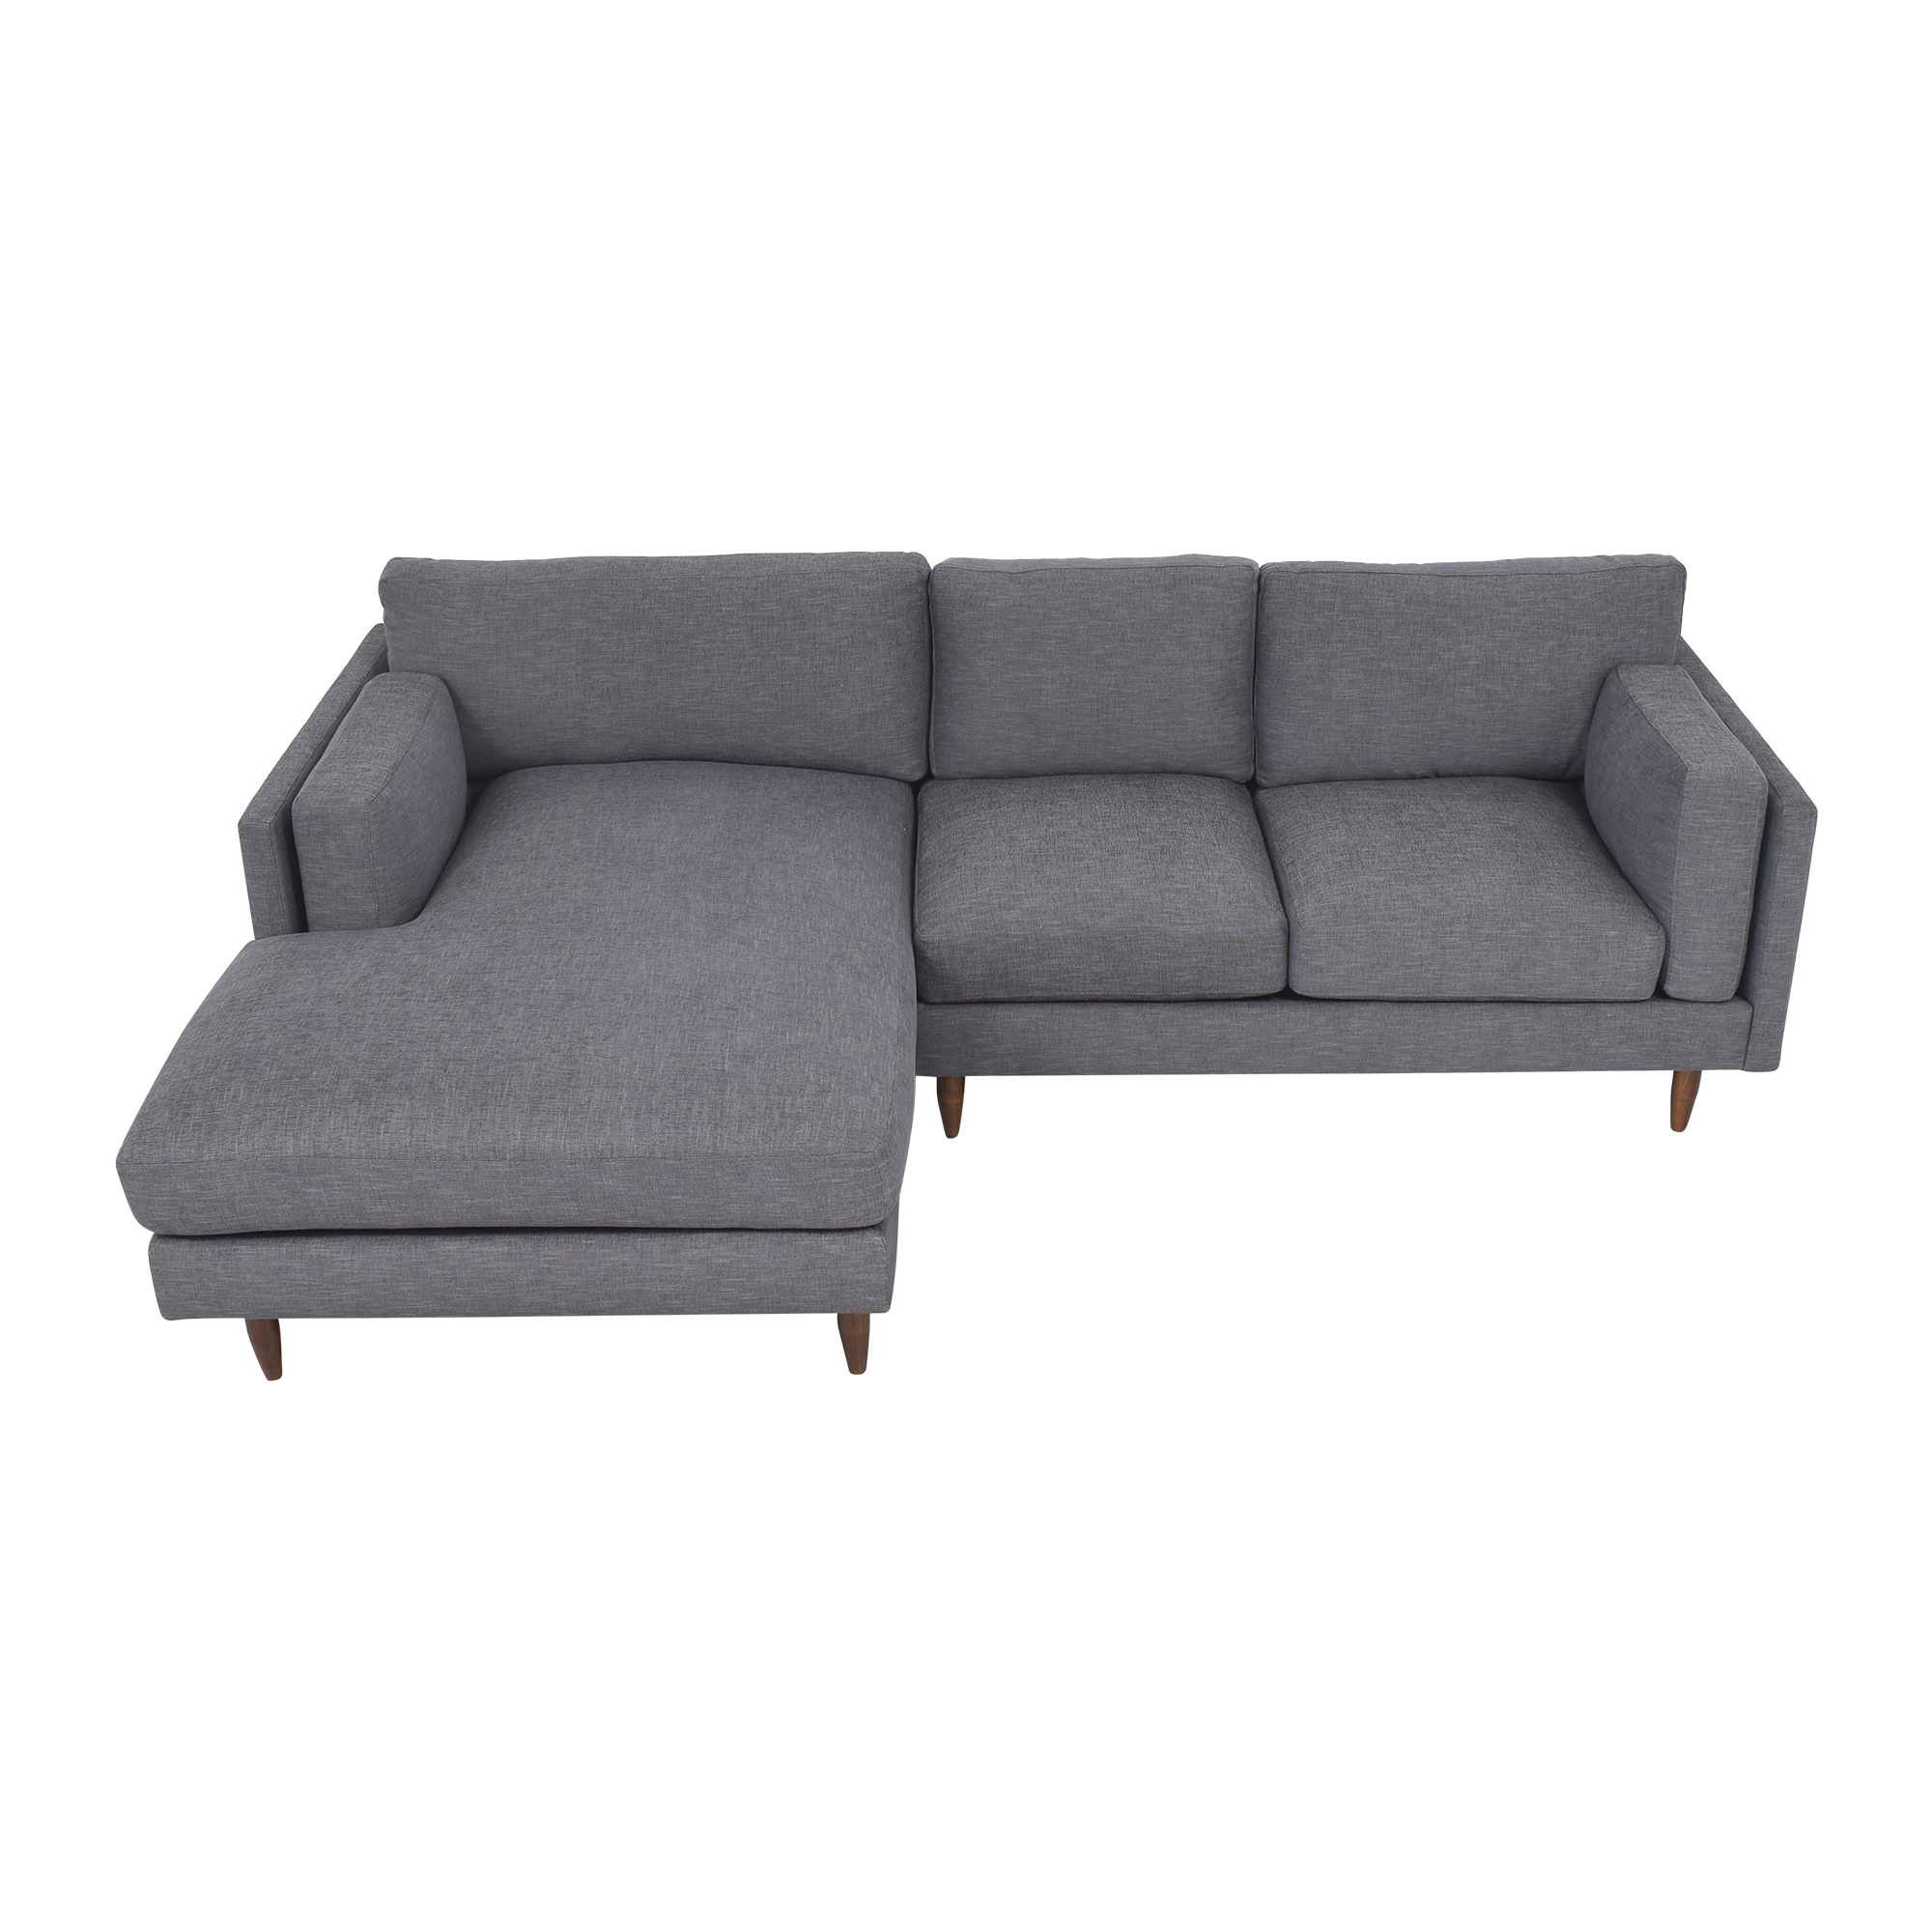 BenchMade Modern BenchMade Modern Skinny Fat Sofa With Chaise